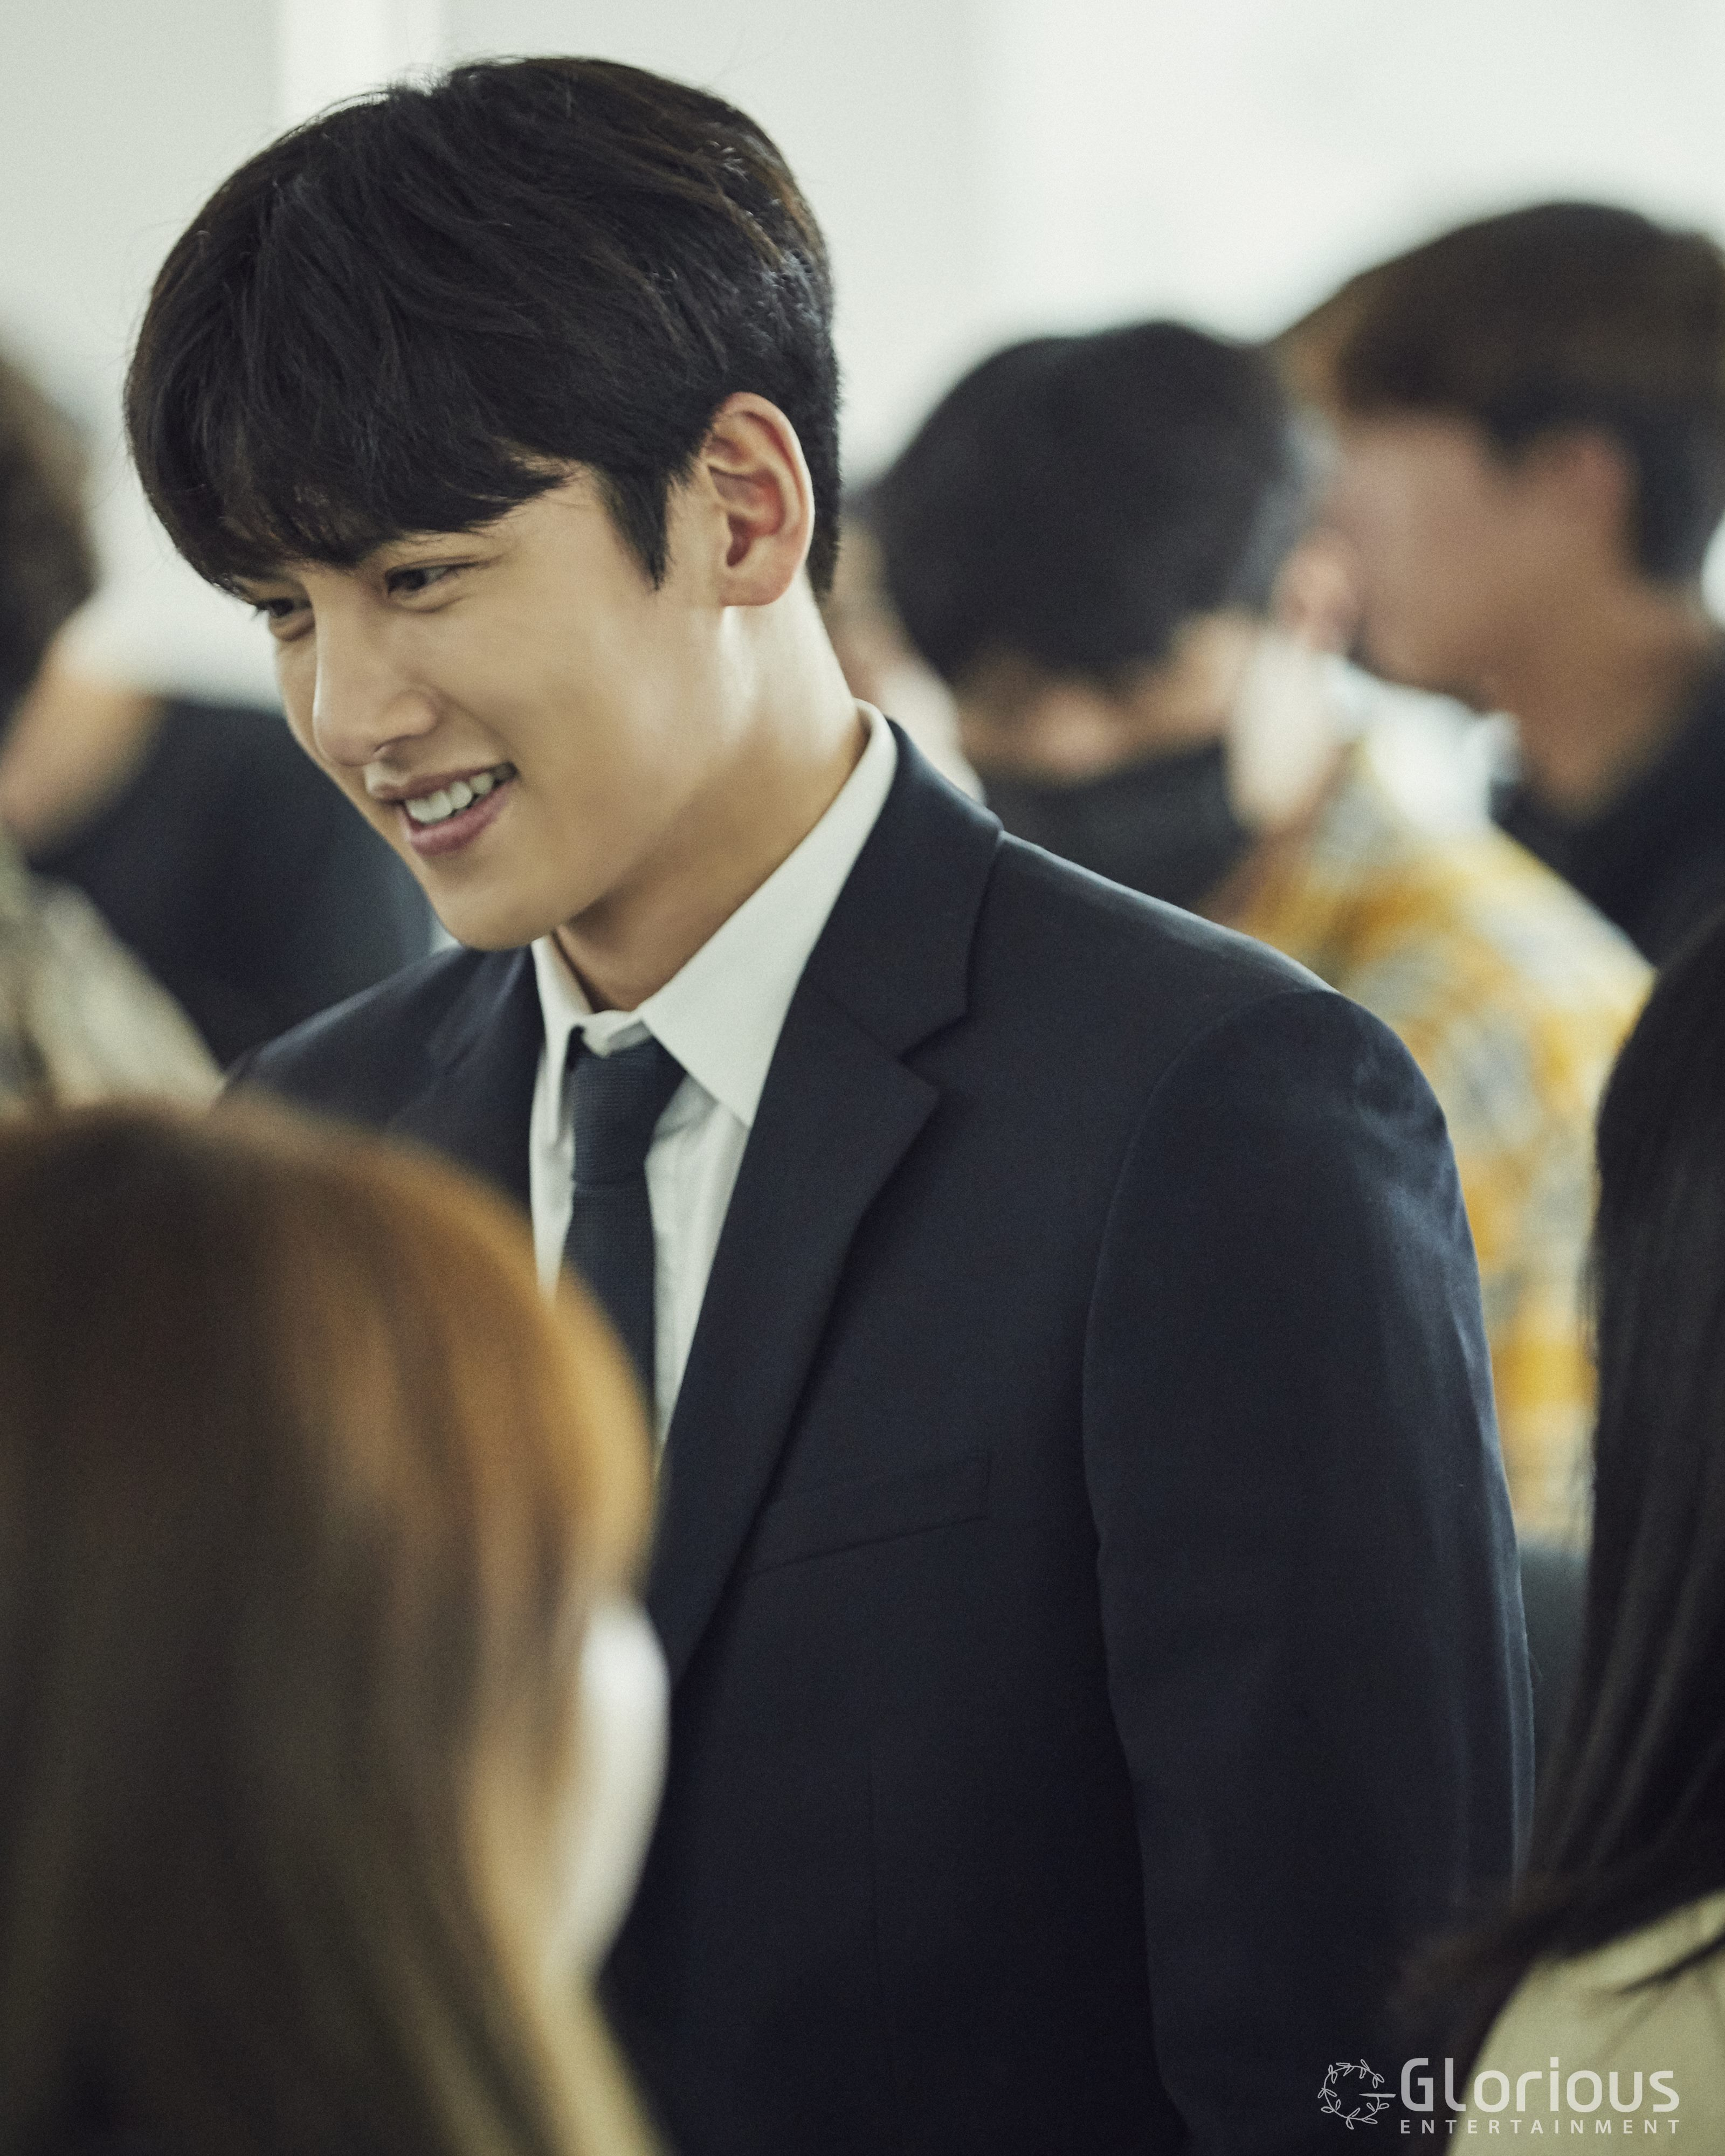 Drama More heartstopping stills of Ji Chang Wook in